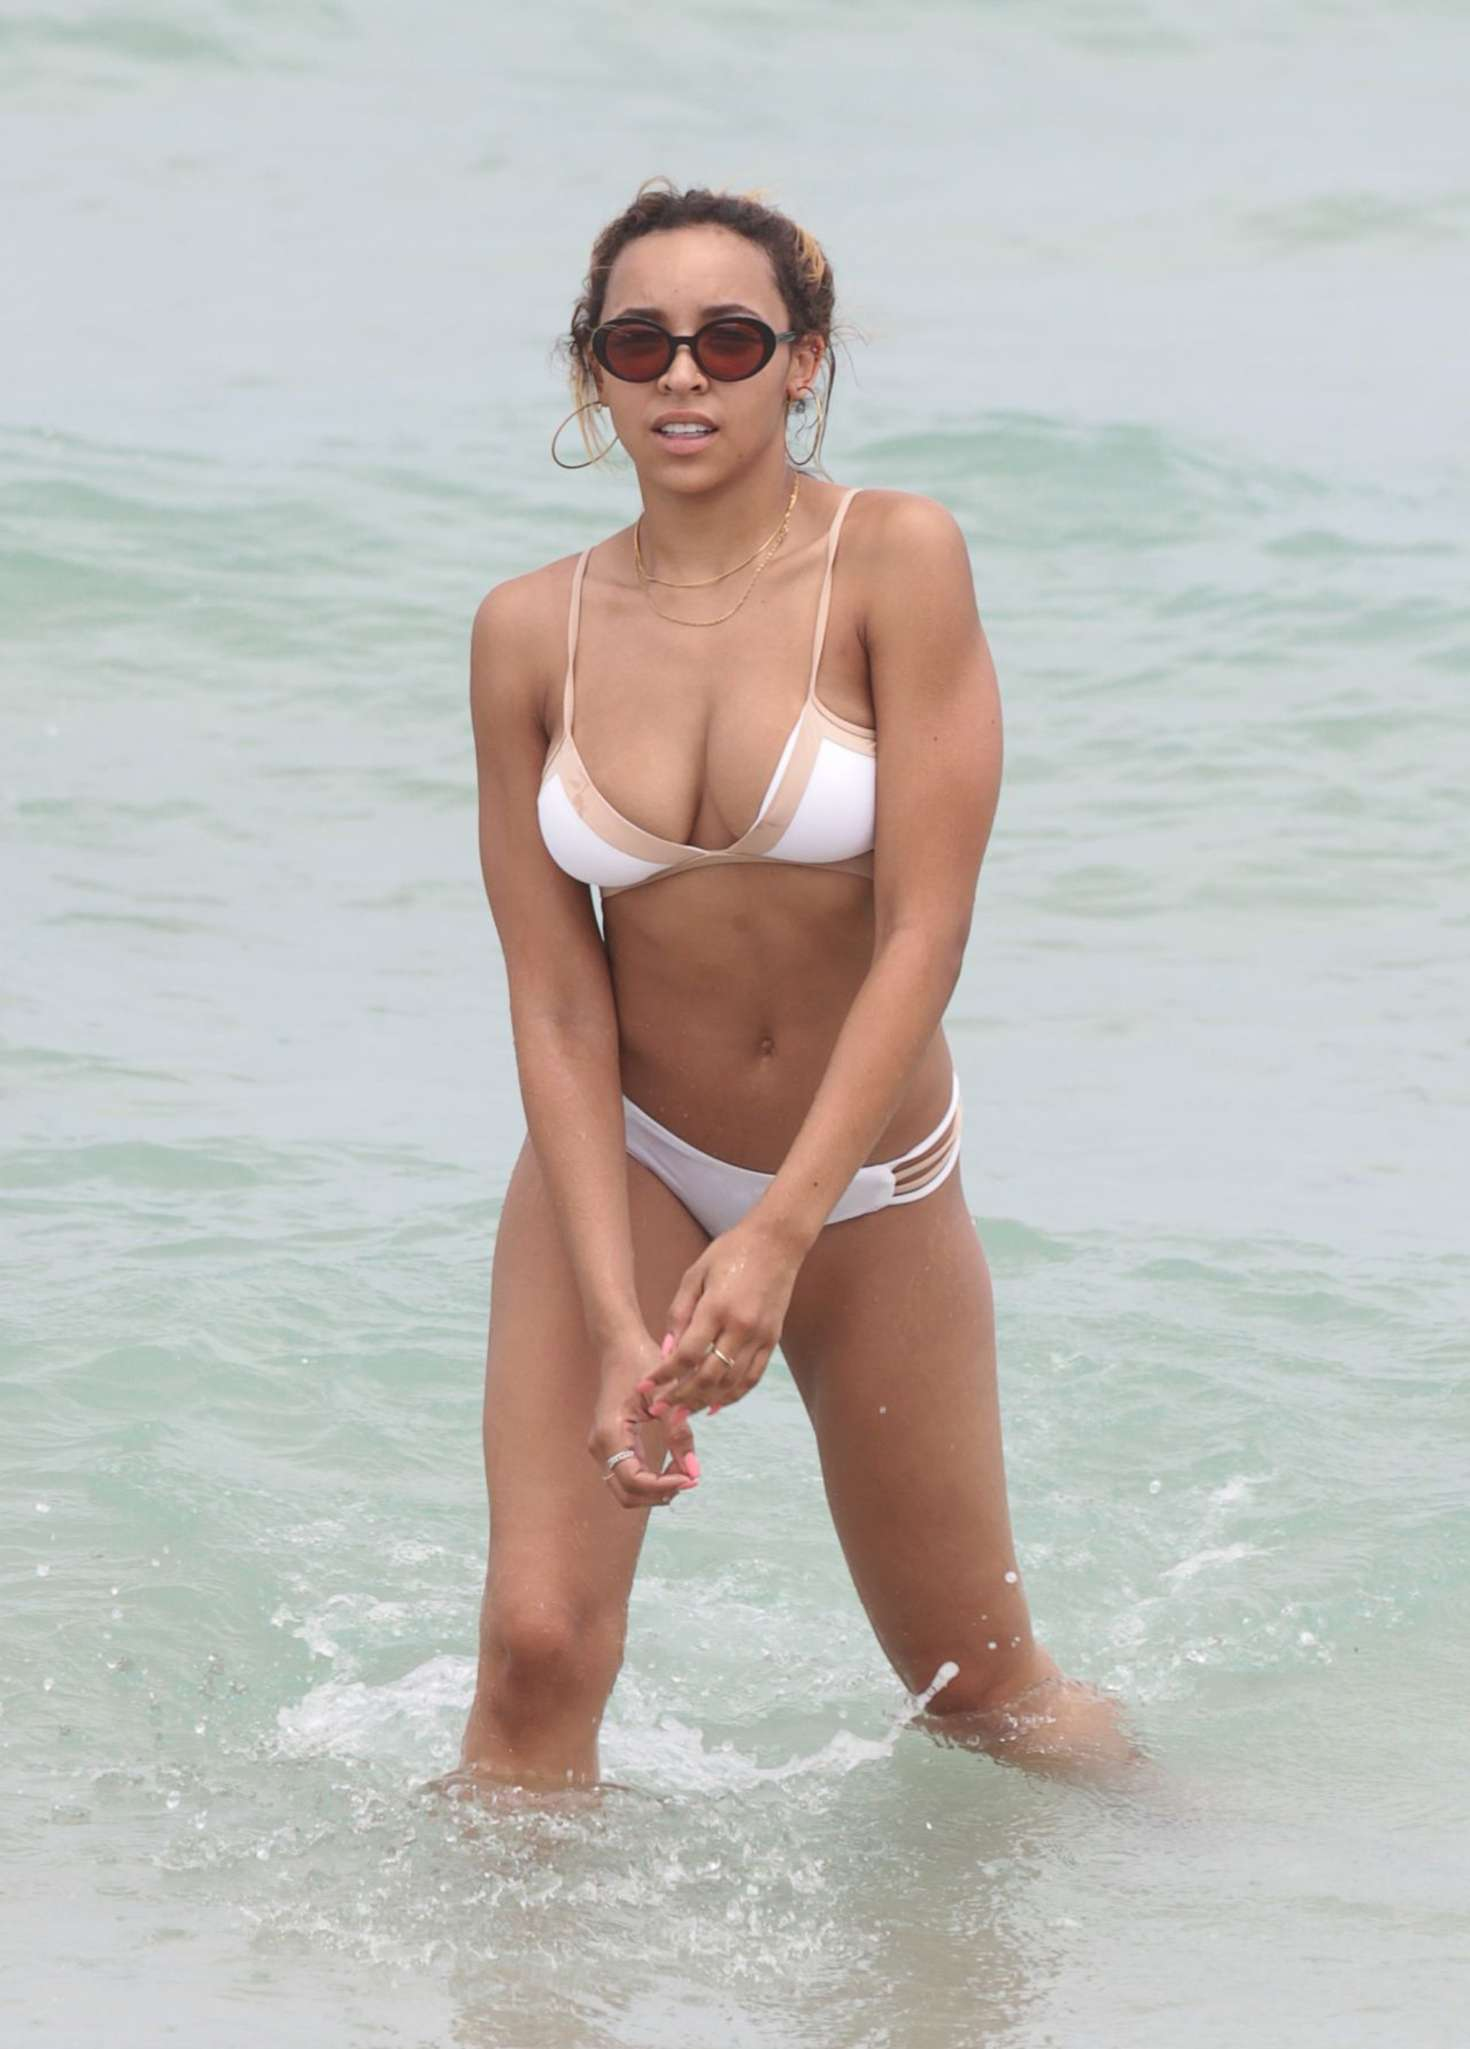 Tinashe Miami in White Bikini on Miami Beach